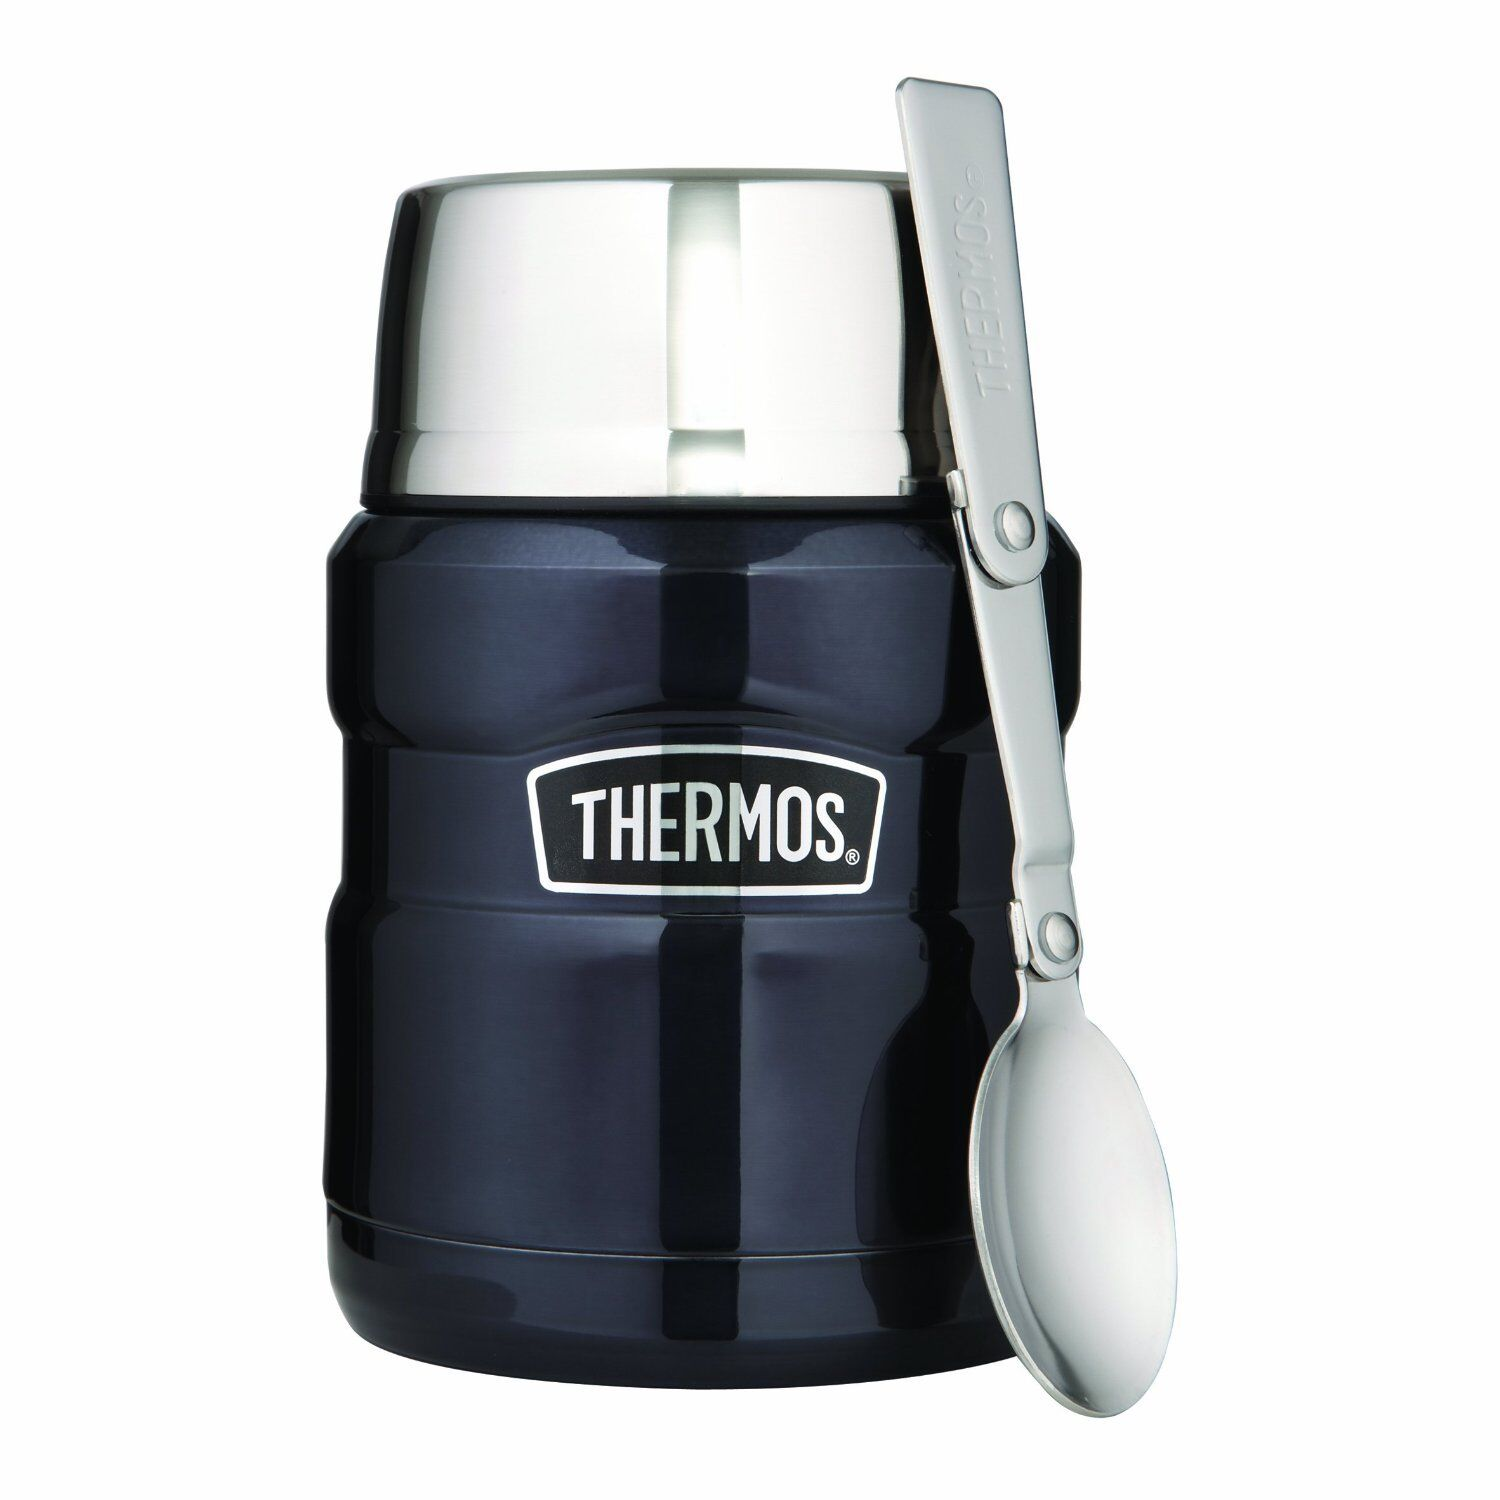 NEW THERMOS STAINLESS STEEL DOUBLE WALL KING FOOD VACUUM FLASK 0.47L WITH SPOON